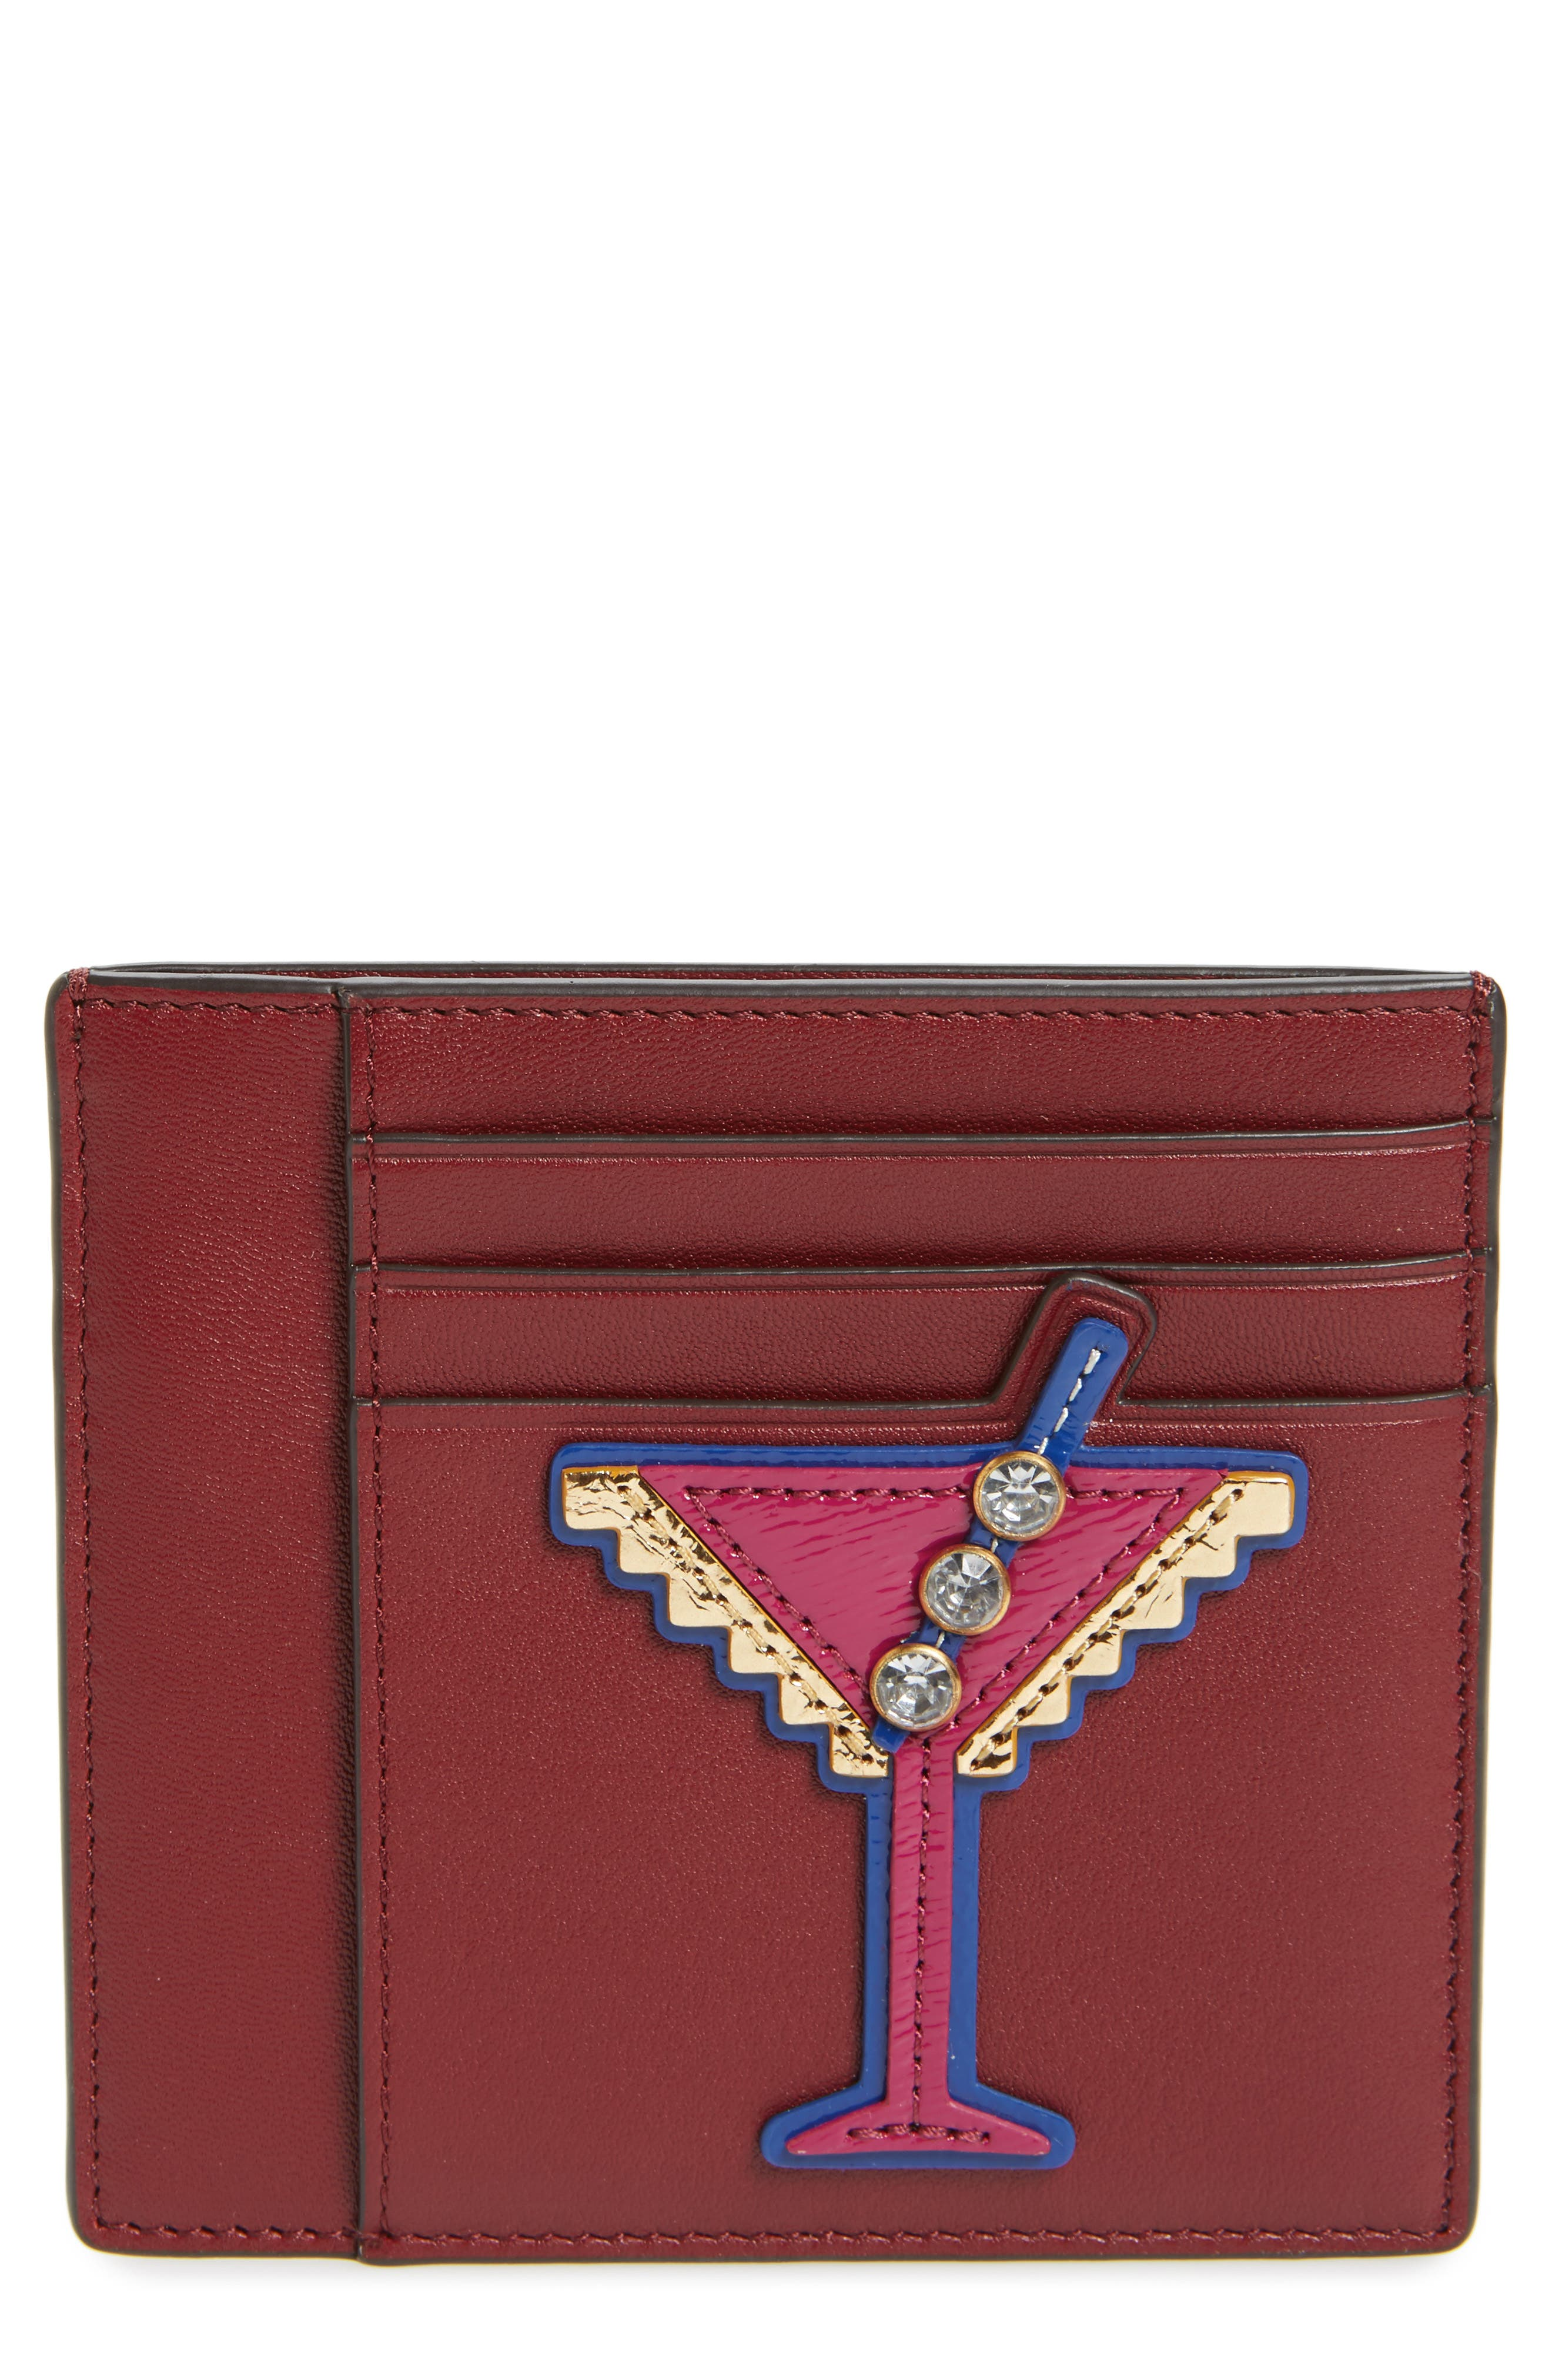 Martini Appliqué Leather Card Case,                         Main,                         color, Imperial Garnet